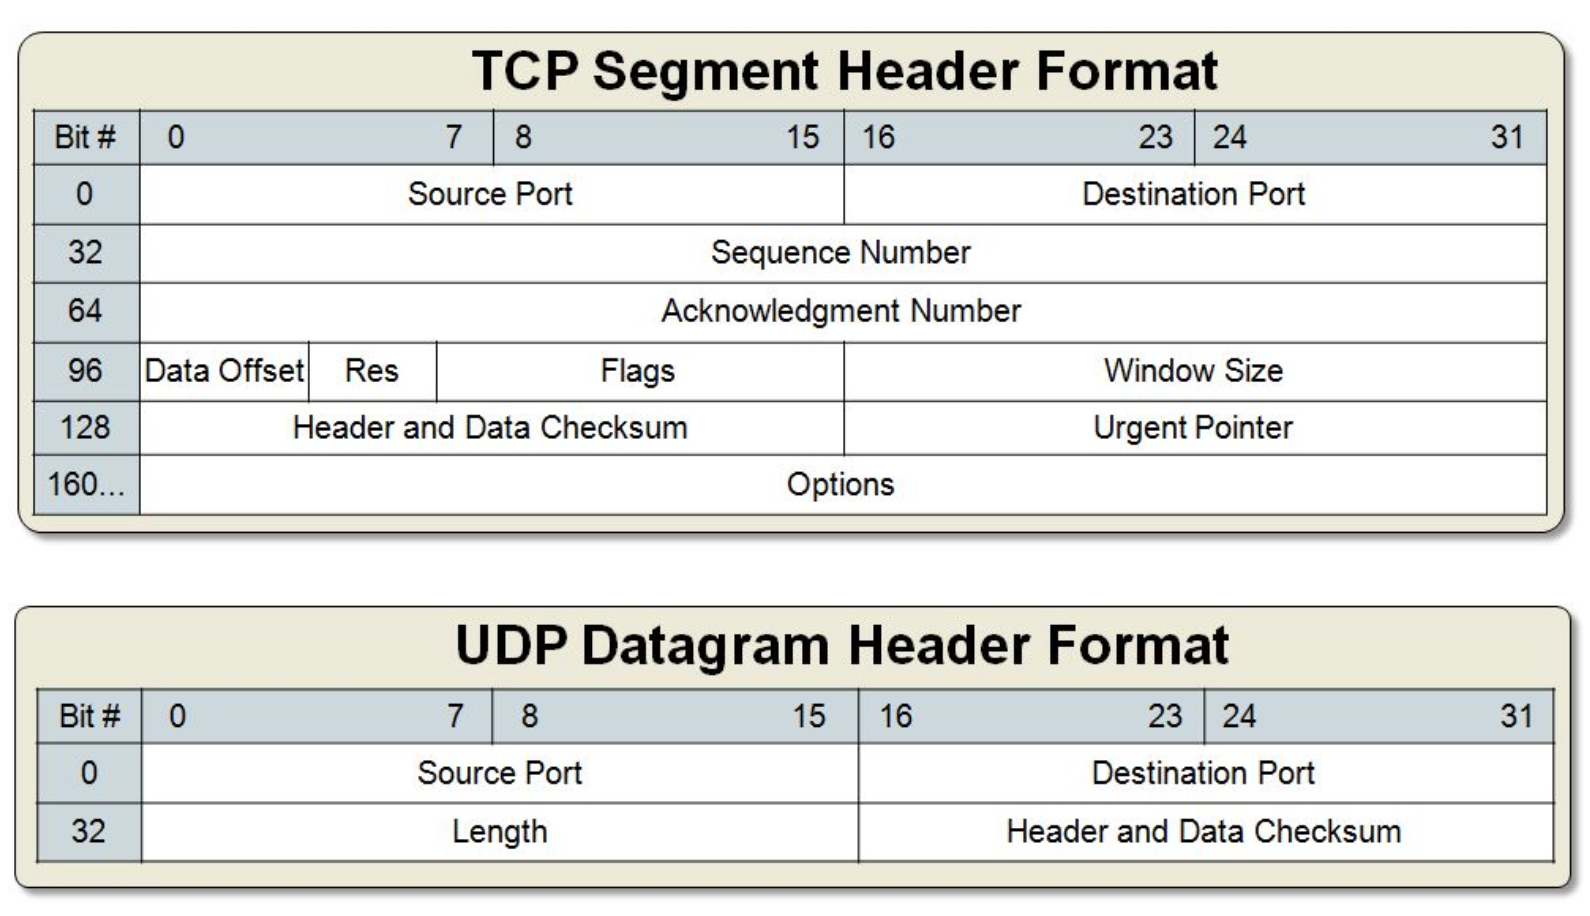 file:img/2020_03_10_tcp-vs-udp.org_20200311_225205.png